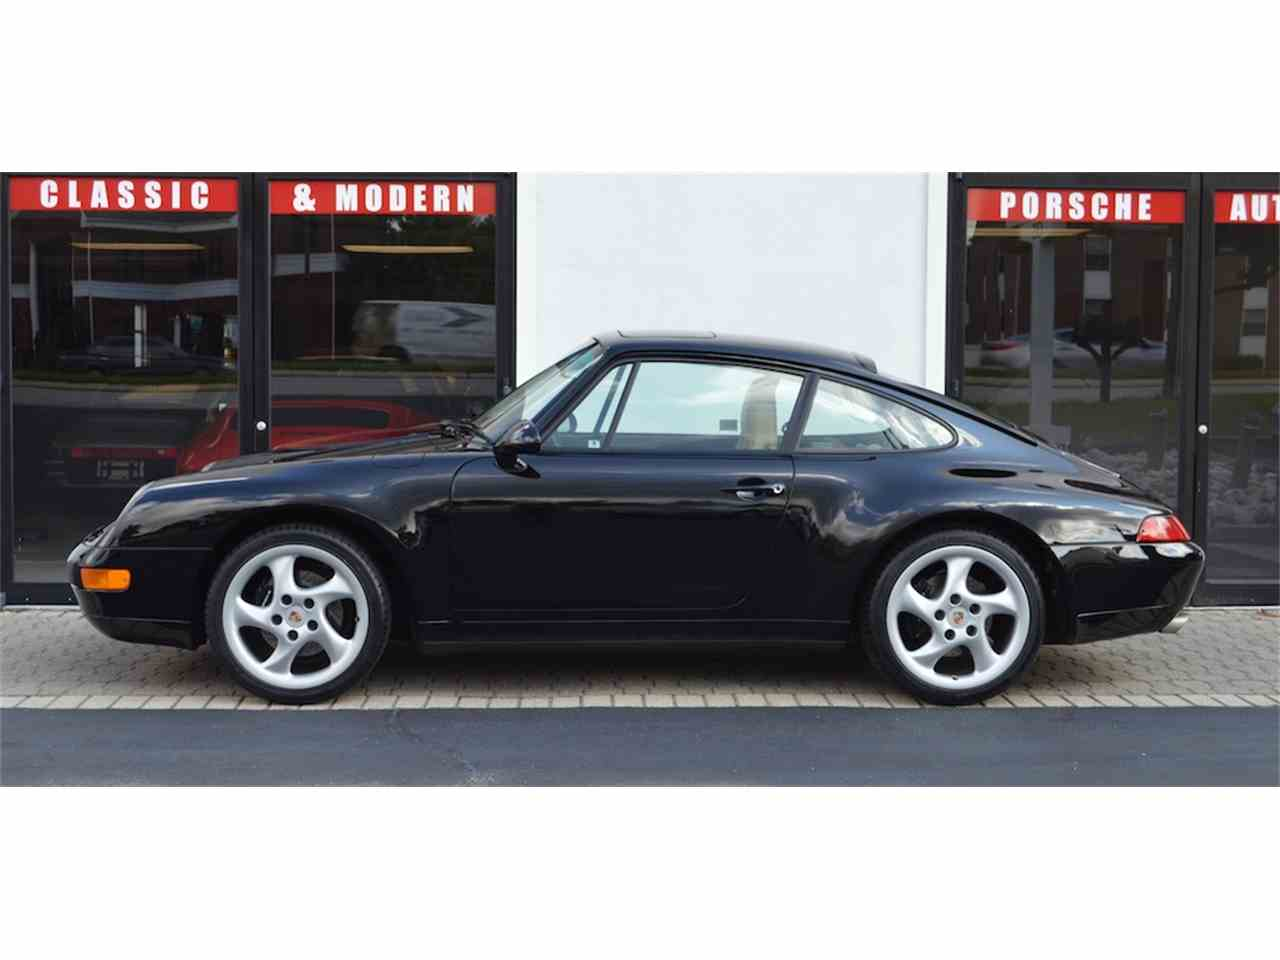 Large Picture of '96 Carrera 2 located in West Chester Pennsylvania Auction Vehicle Offered by Holt Motorsports - JGU1